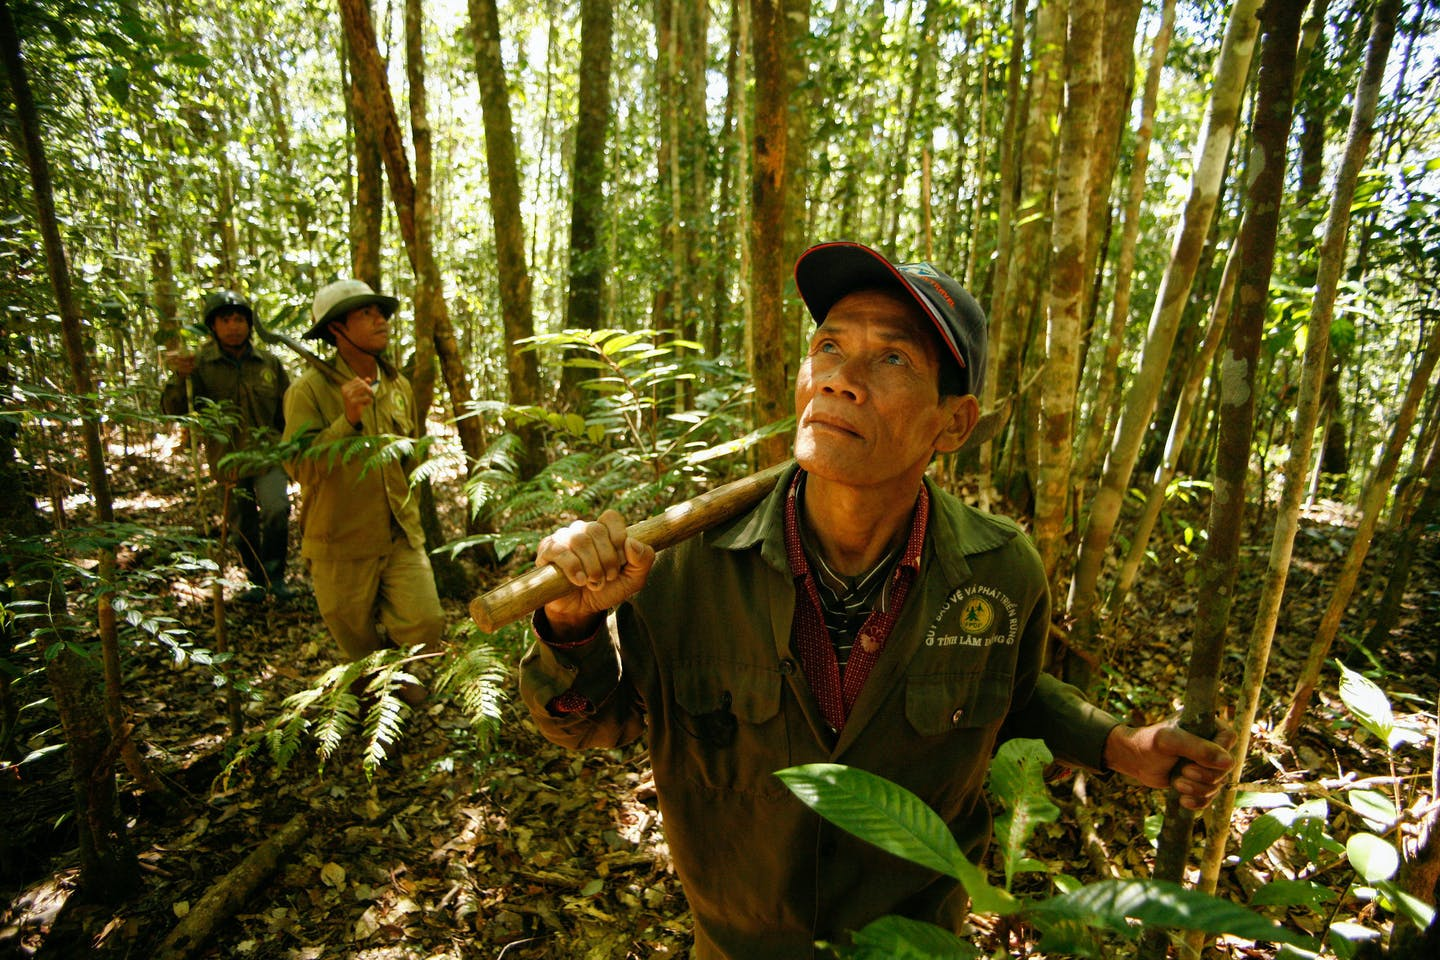 Locals patrol the forest in Vietnam